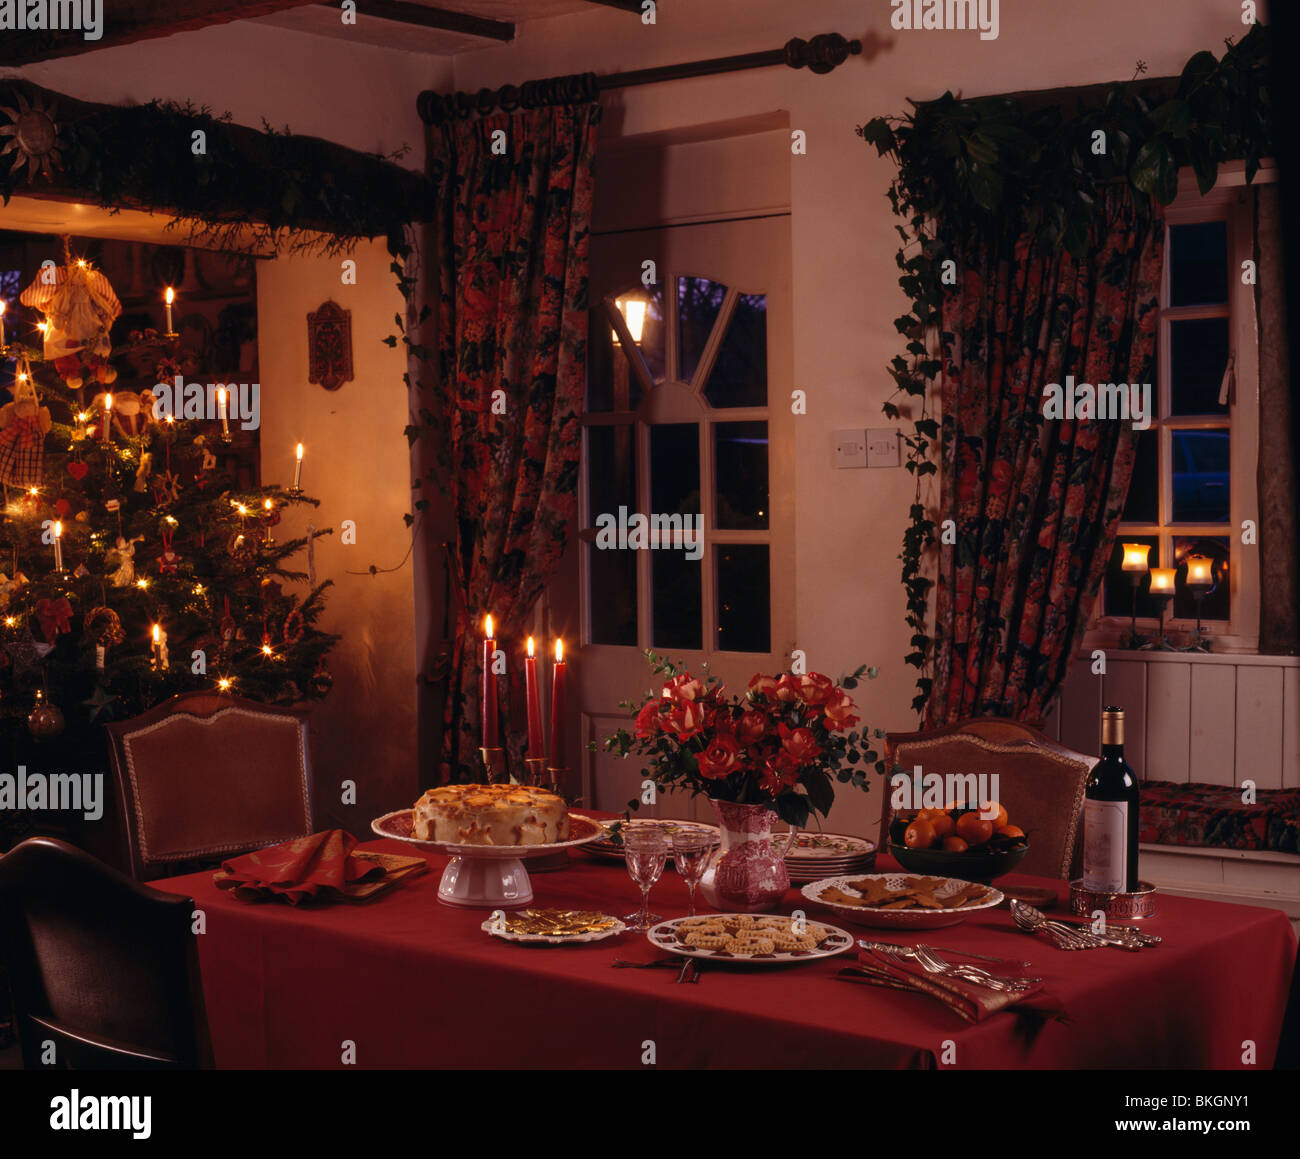 Red Cloth On Table Set For Christmas Tea In Cottage Dining Room With Fairy Lights Tree And Heavy Curtains Window